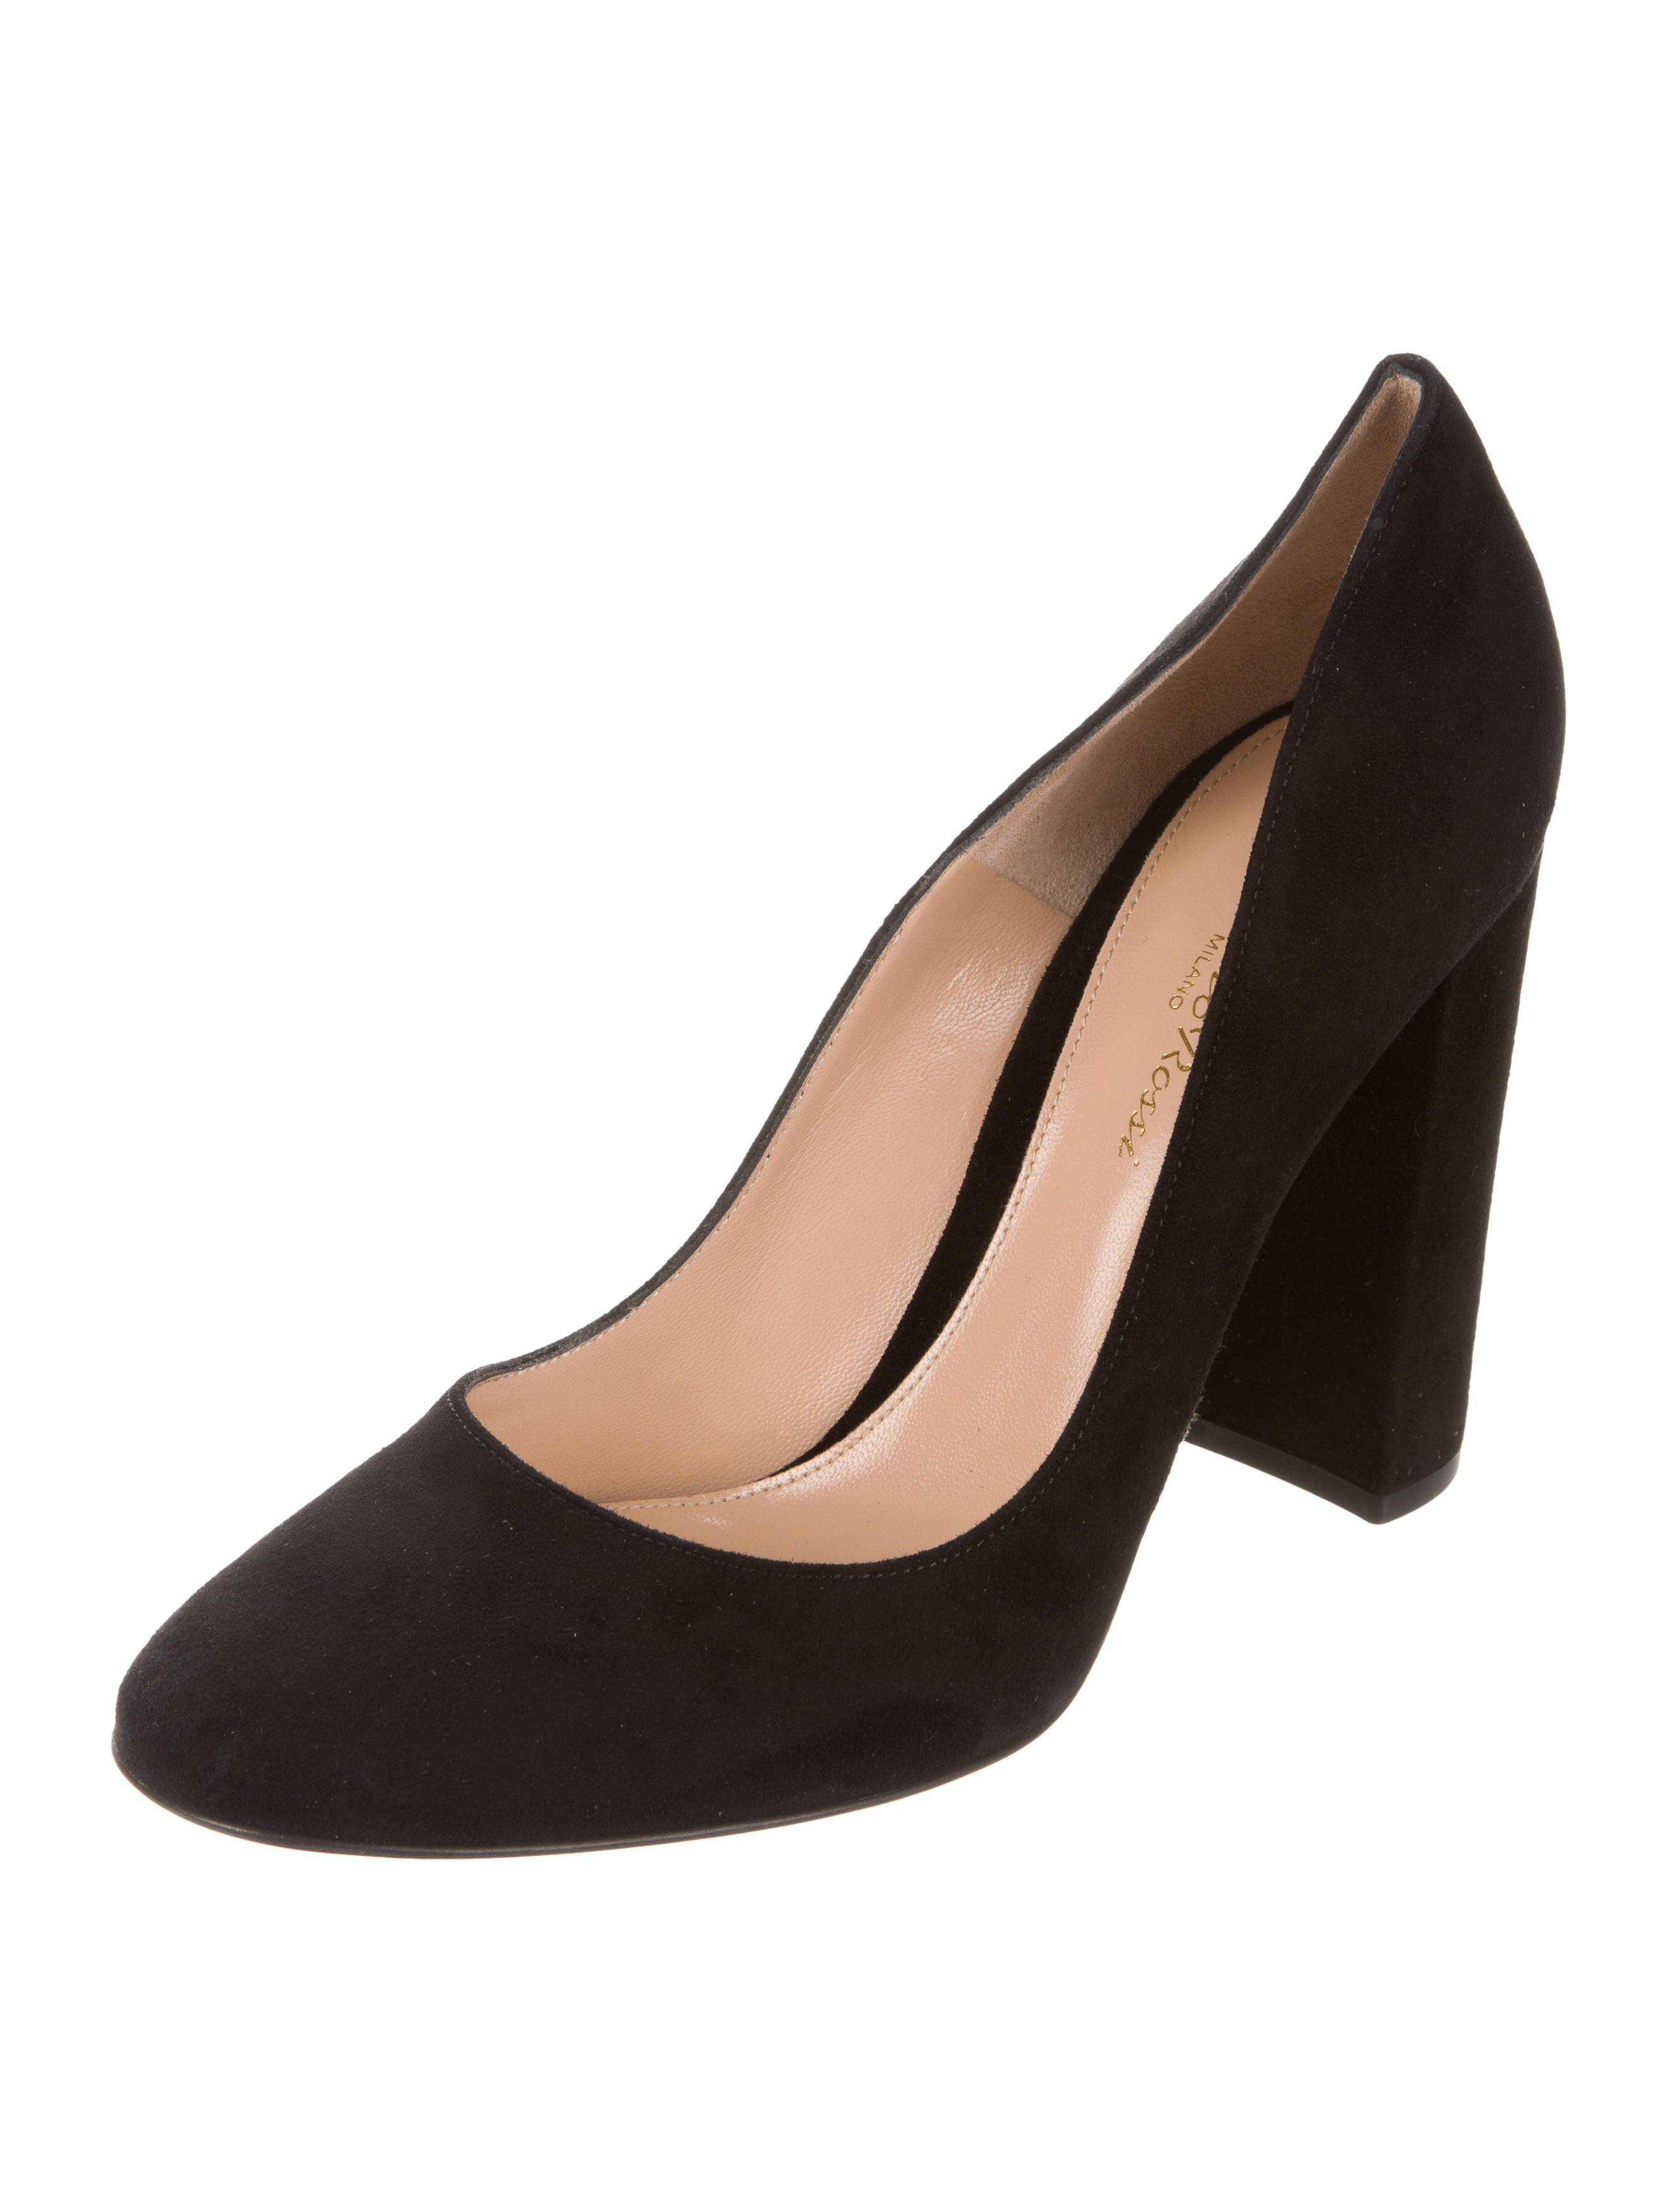 discount for sale Gianvito Rossi Linda Suede Pumps w/ Tags footlocker finishline for sale professional for sale free shipping 2014 unisex cheap real finishline qeQ1nj